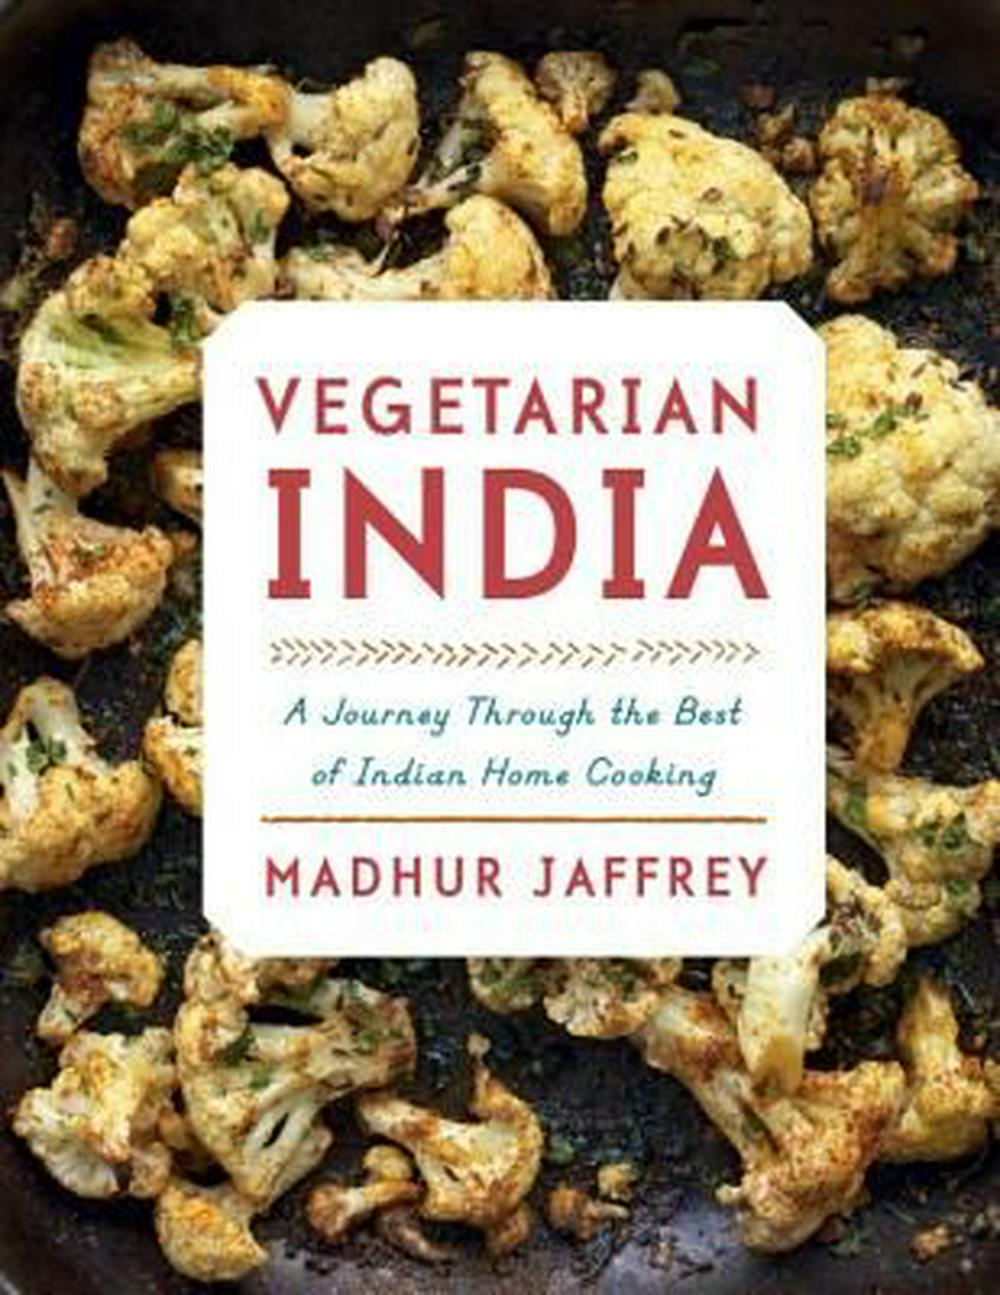 Vegetarian IndiaA Journey Through the Best of Indian Home Cooking